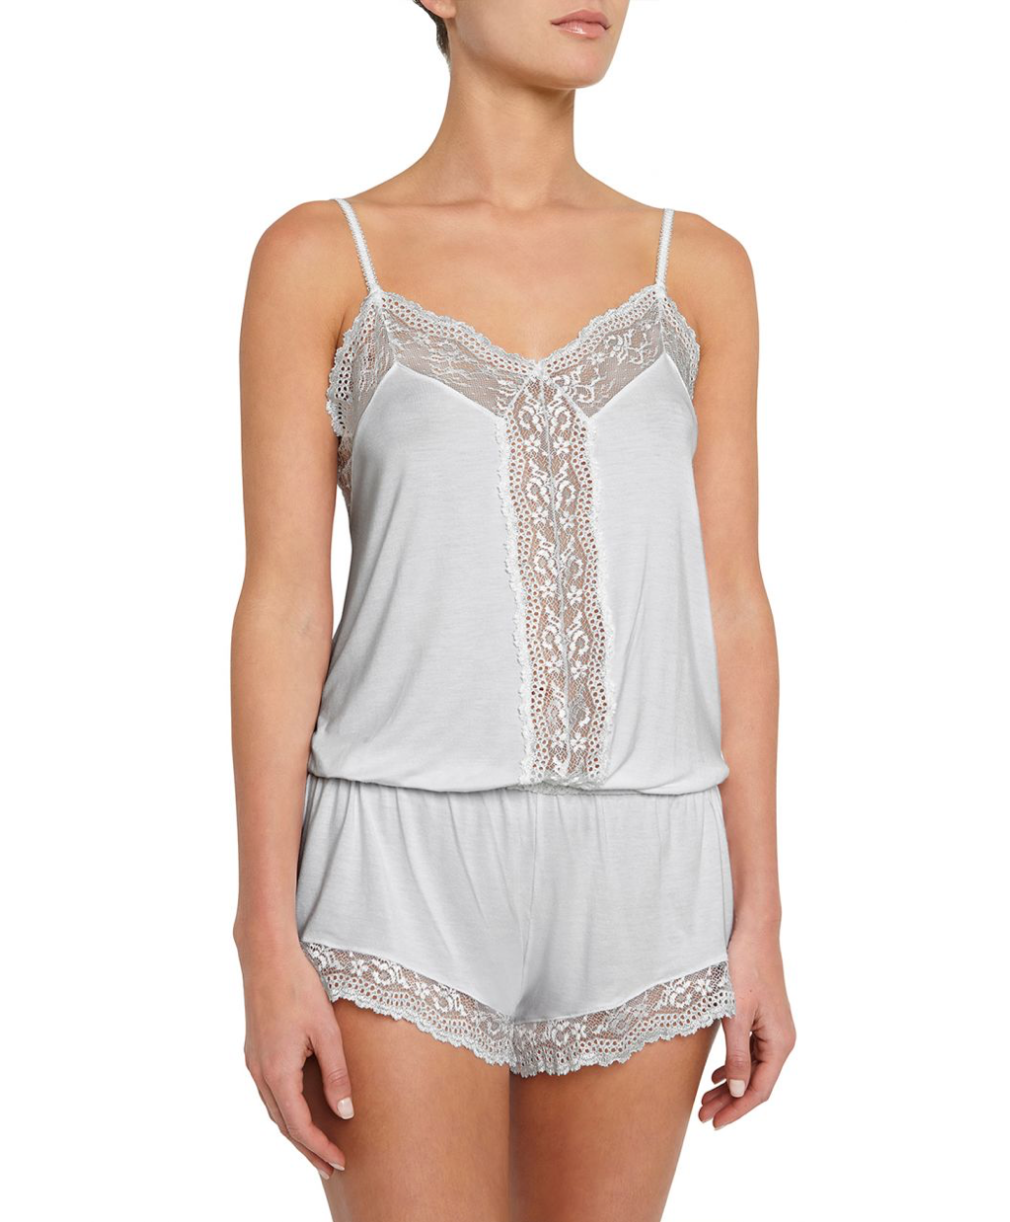 Bridal shower rompers at knickersnpearls.com